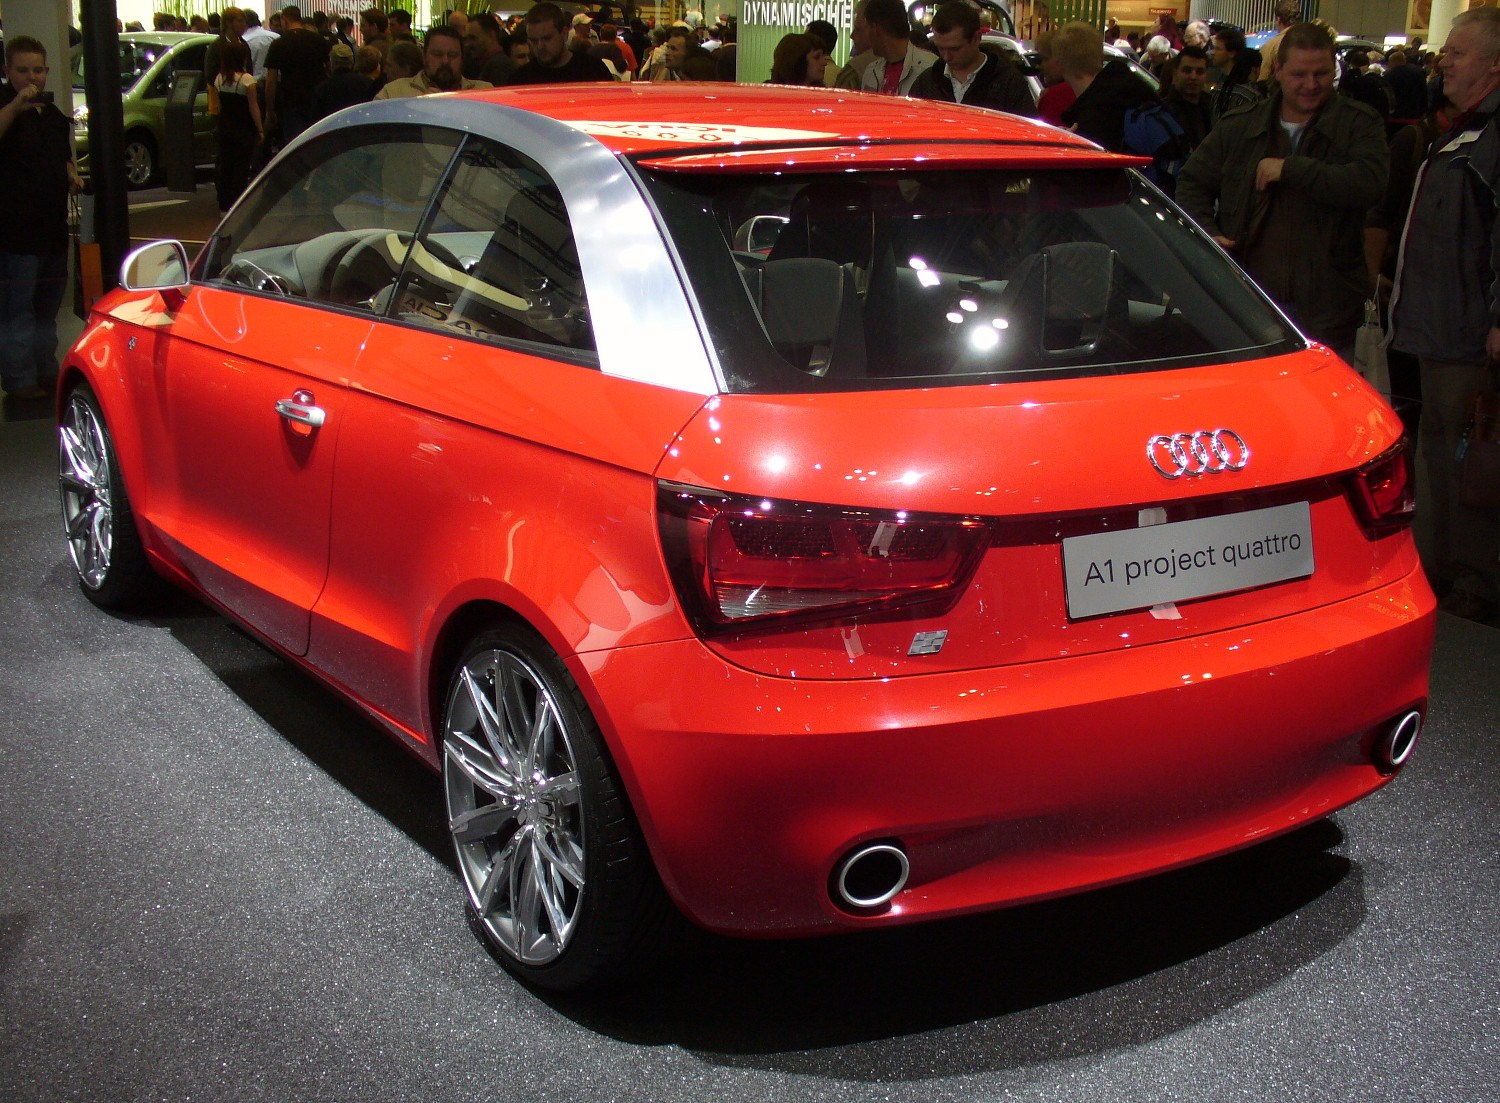 file audi a1 metroproject quattro heck jpg wikipedia. Black Bedroom Furniture Sets. Home Design Ideas